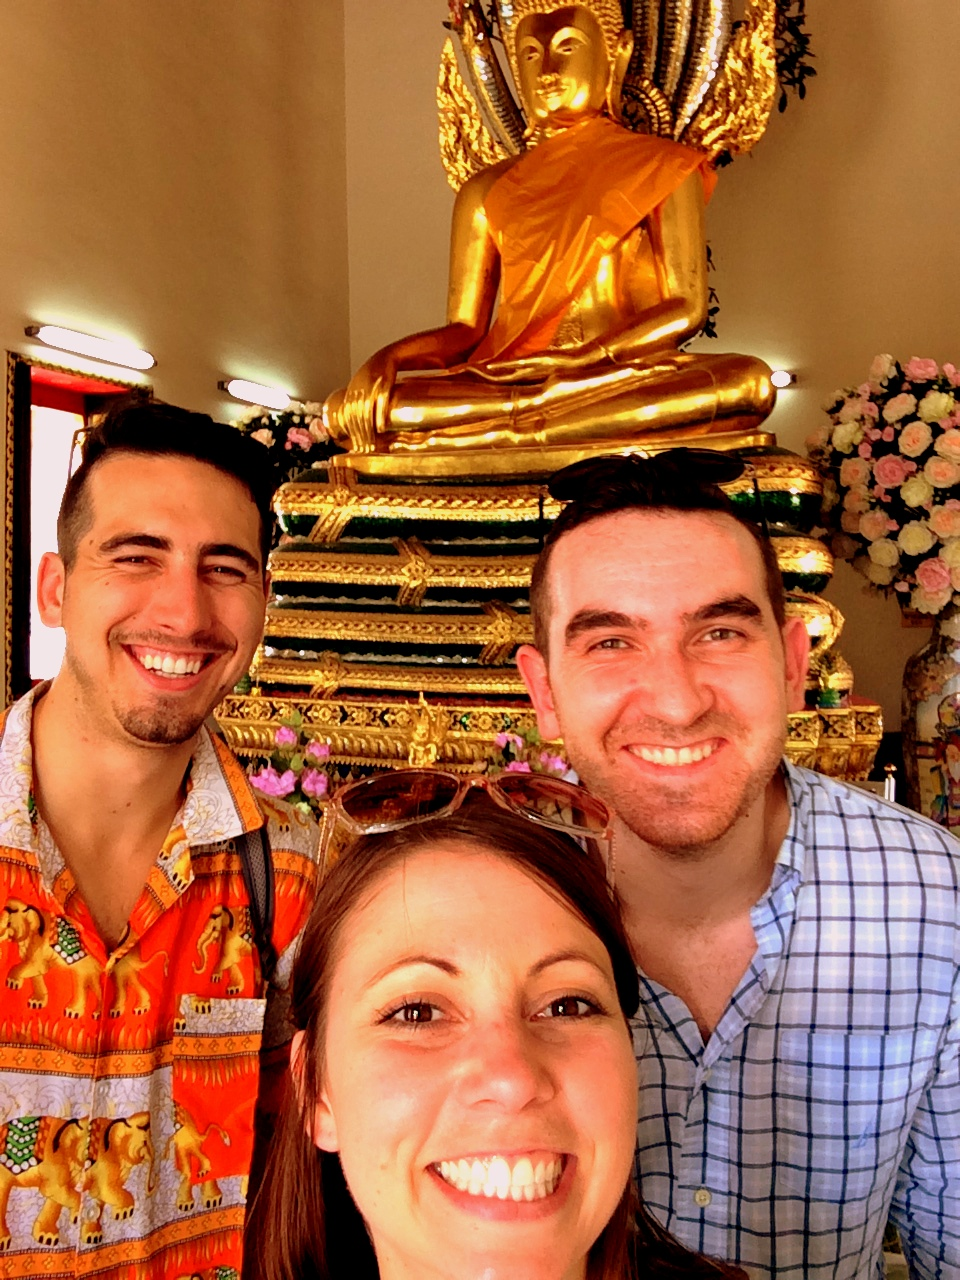 Pictured: An oversees #RedShelfie withKyle (Regional Sales Manager), Scott (Chief Technology Officer, and Shannon (Director of Sales and Marketing) at the Grand Palace in Bangkok, Thailand.